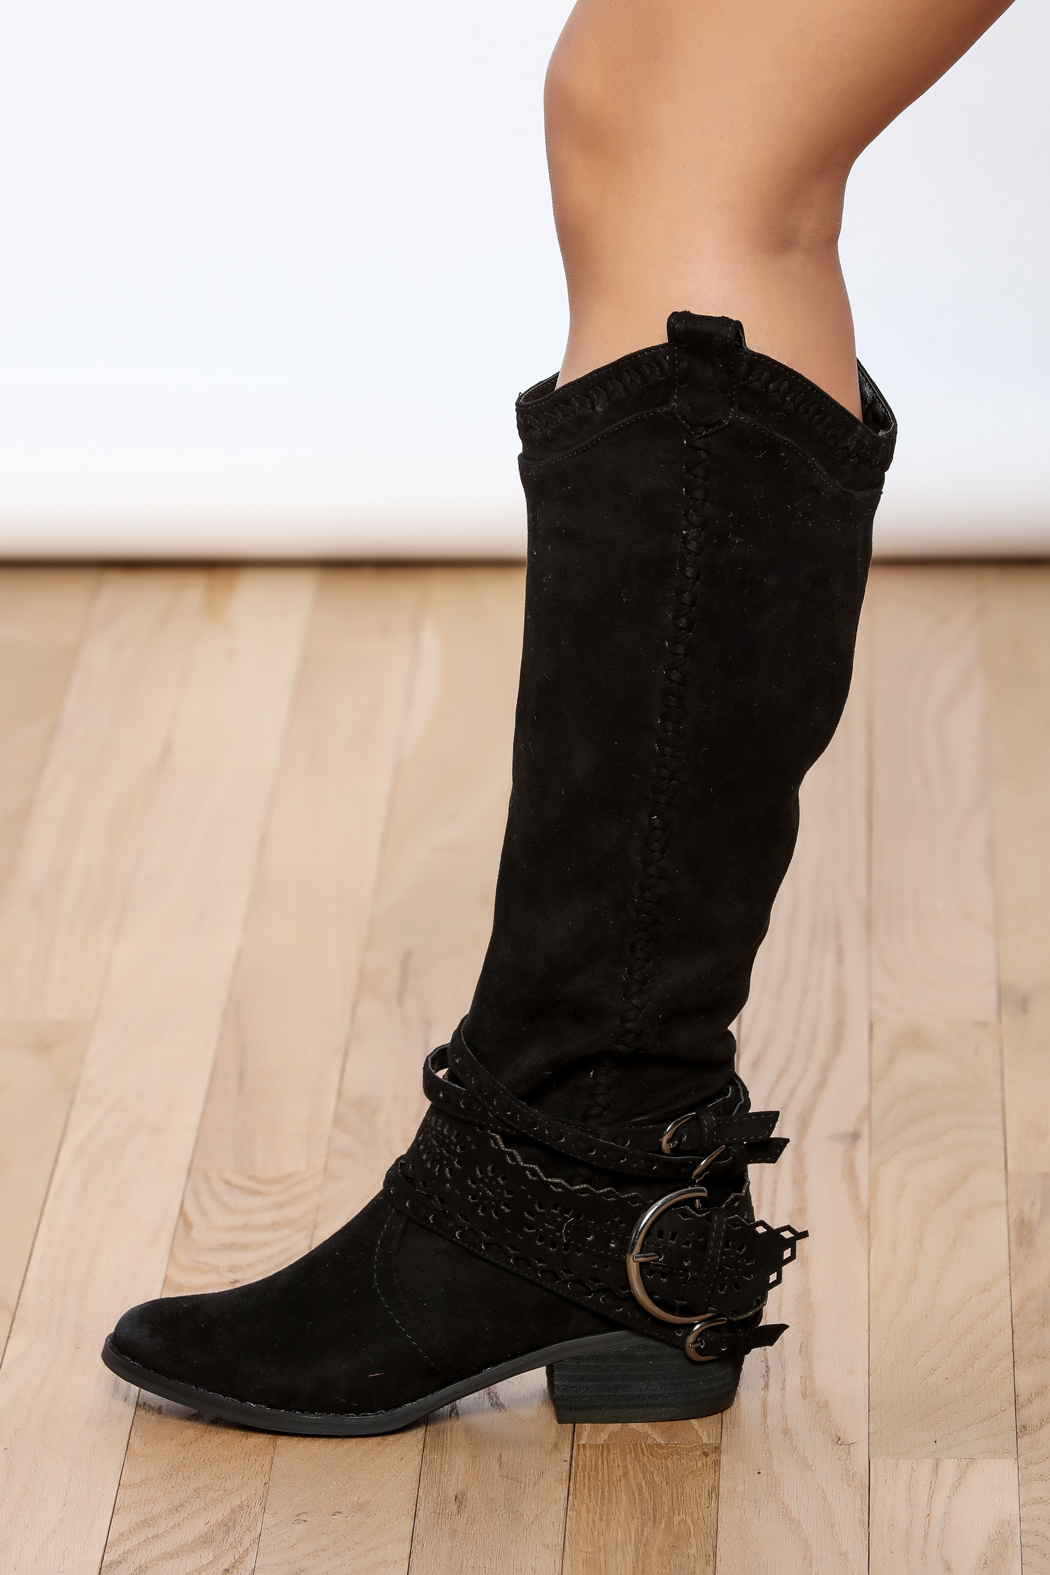 Not Rated Black Buckle Boots from